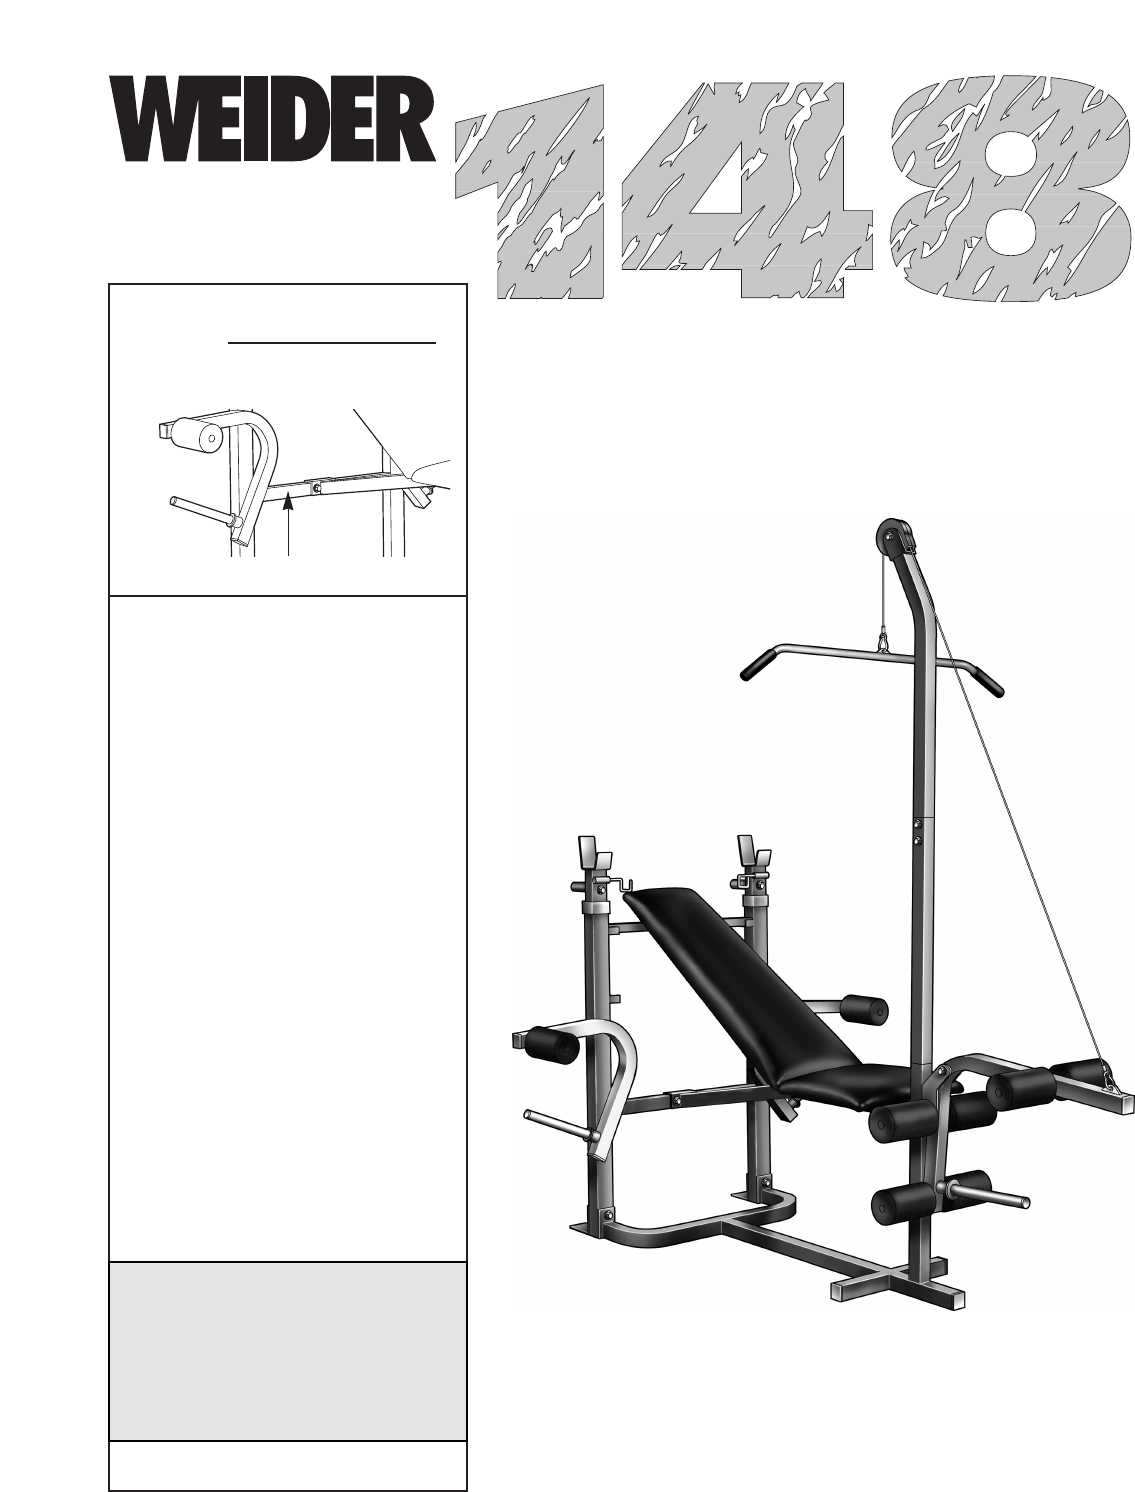 Weider home gym 148 user guide manualsonline nvjuhfo Image collections